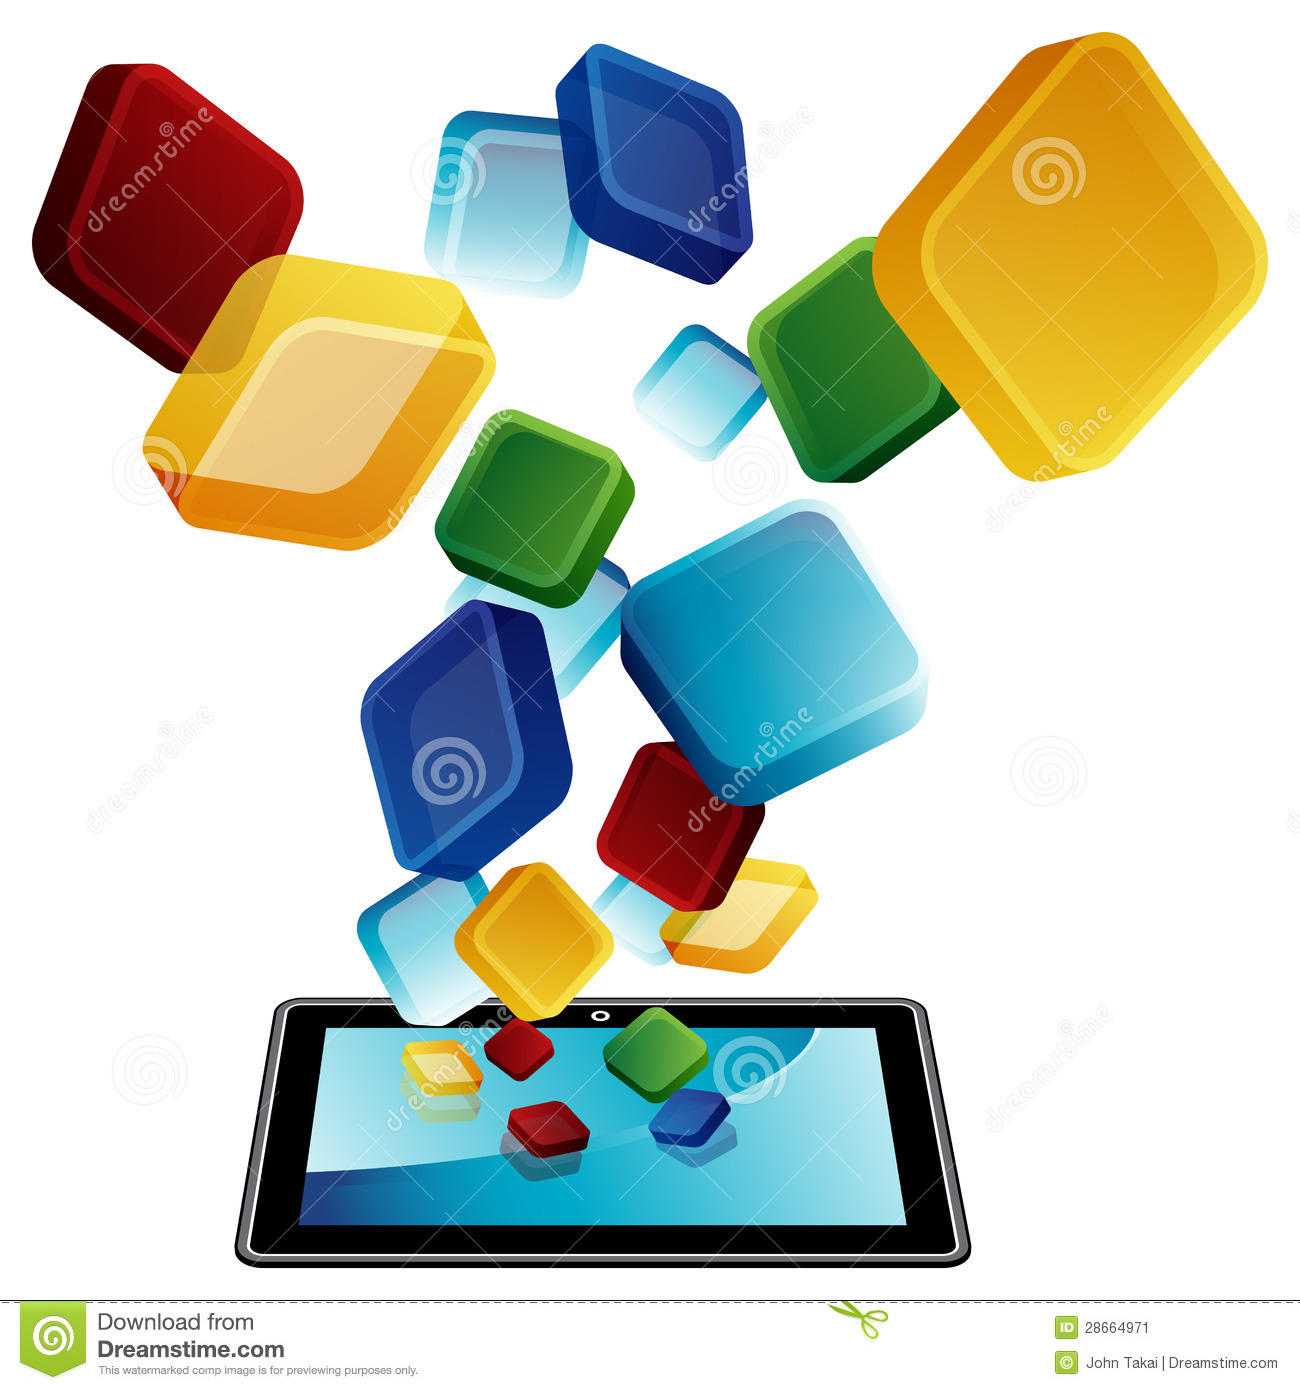 Tablet Apps Stock Image - Image: 28664971